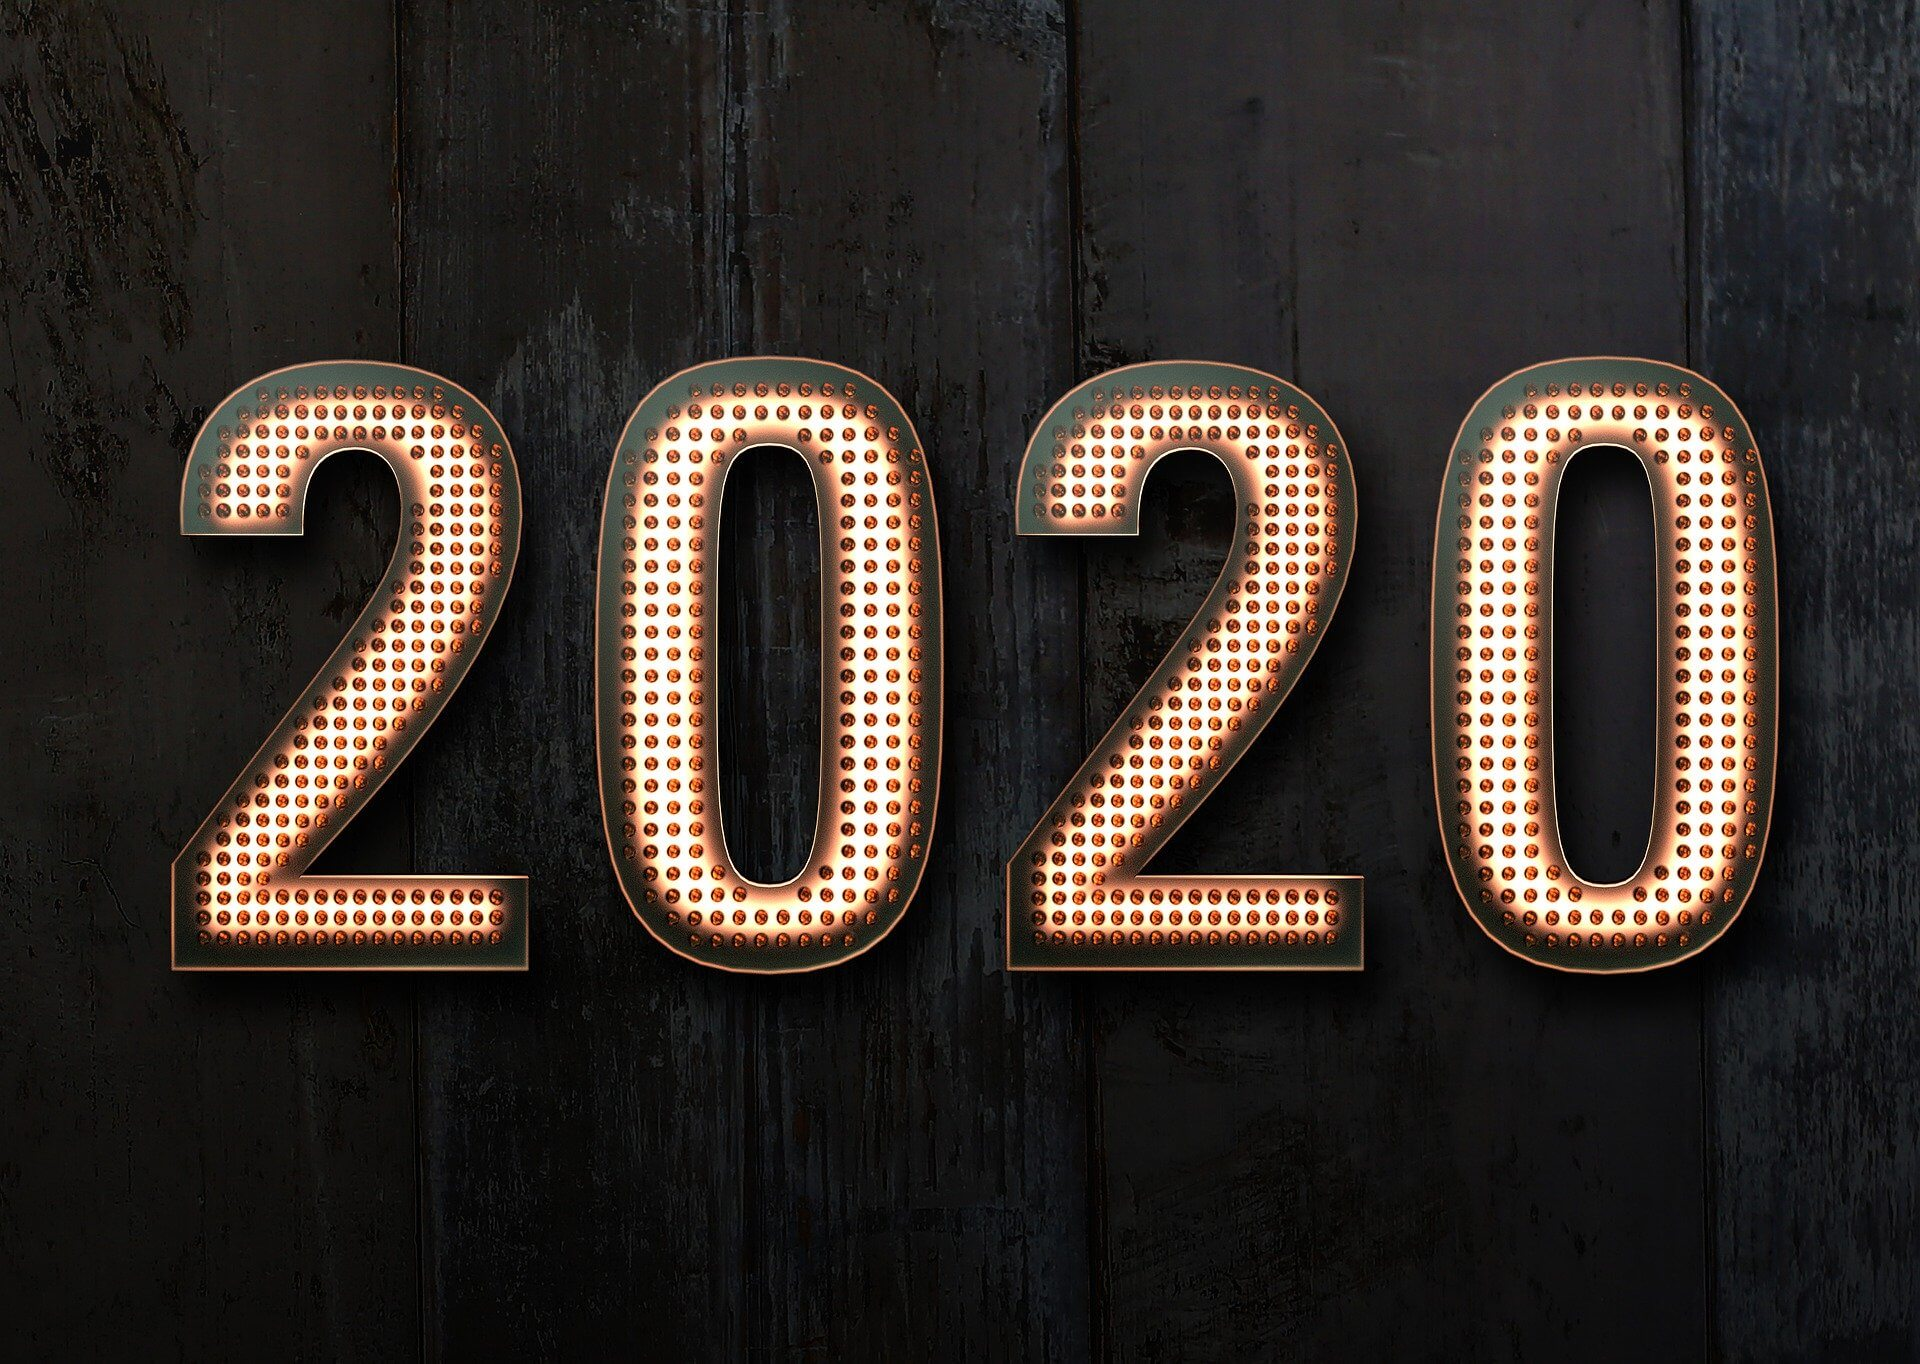 2020 – Happy New Year!